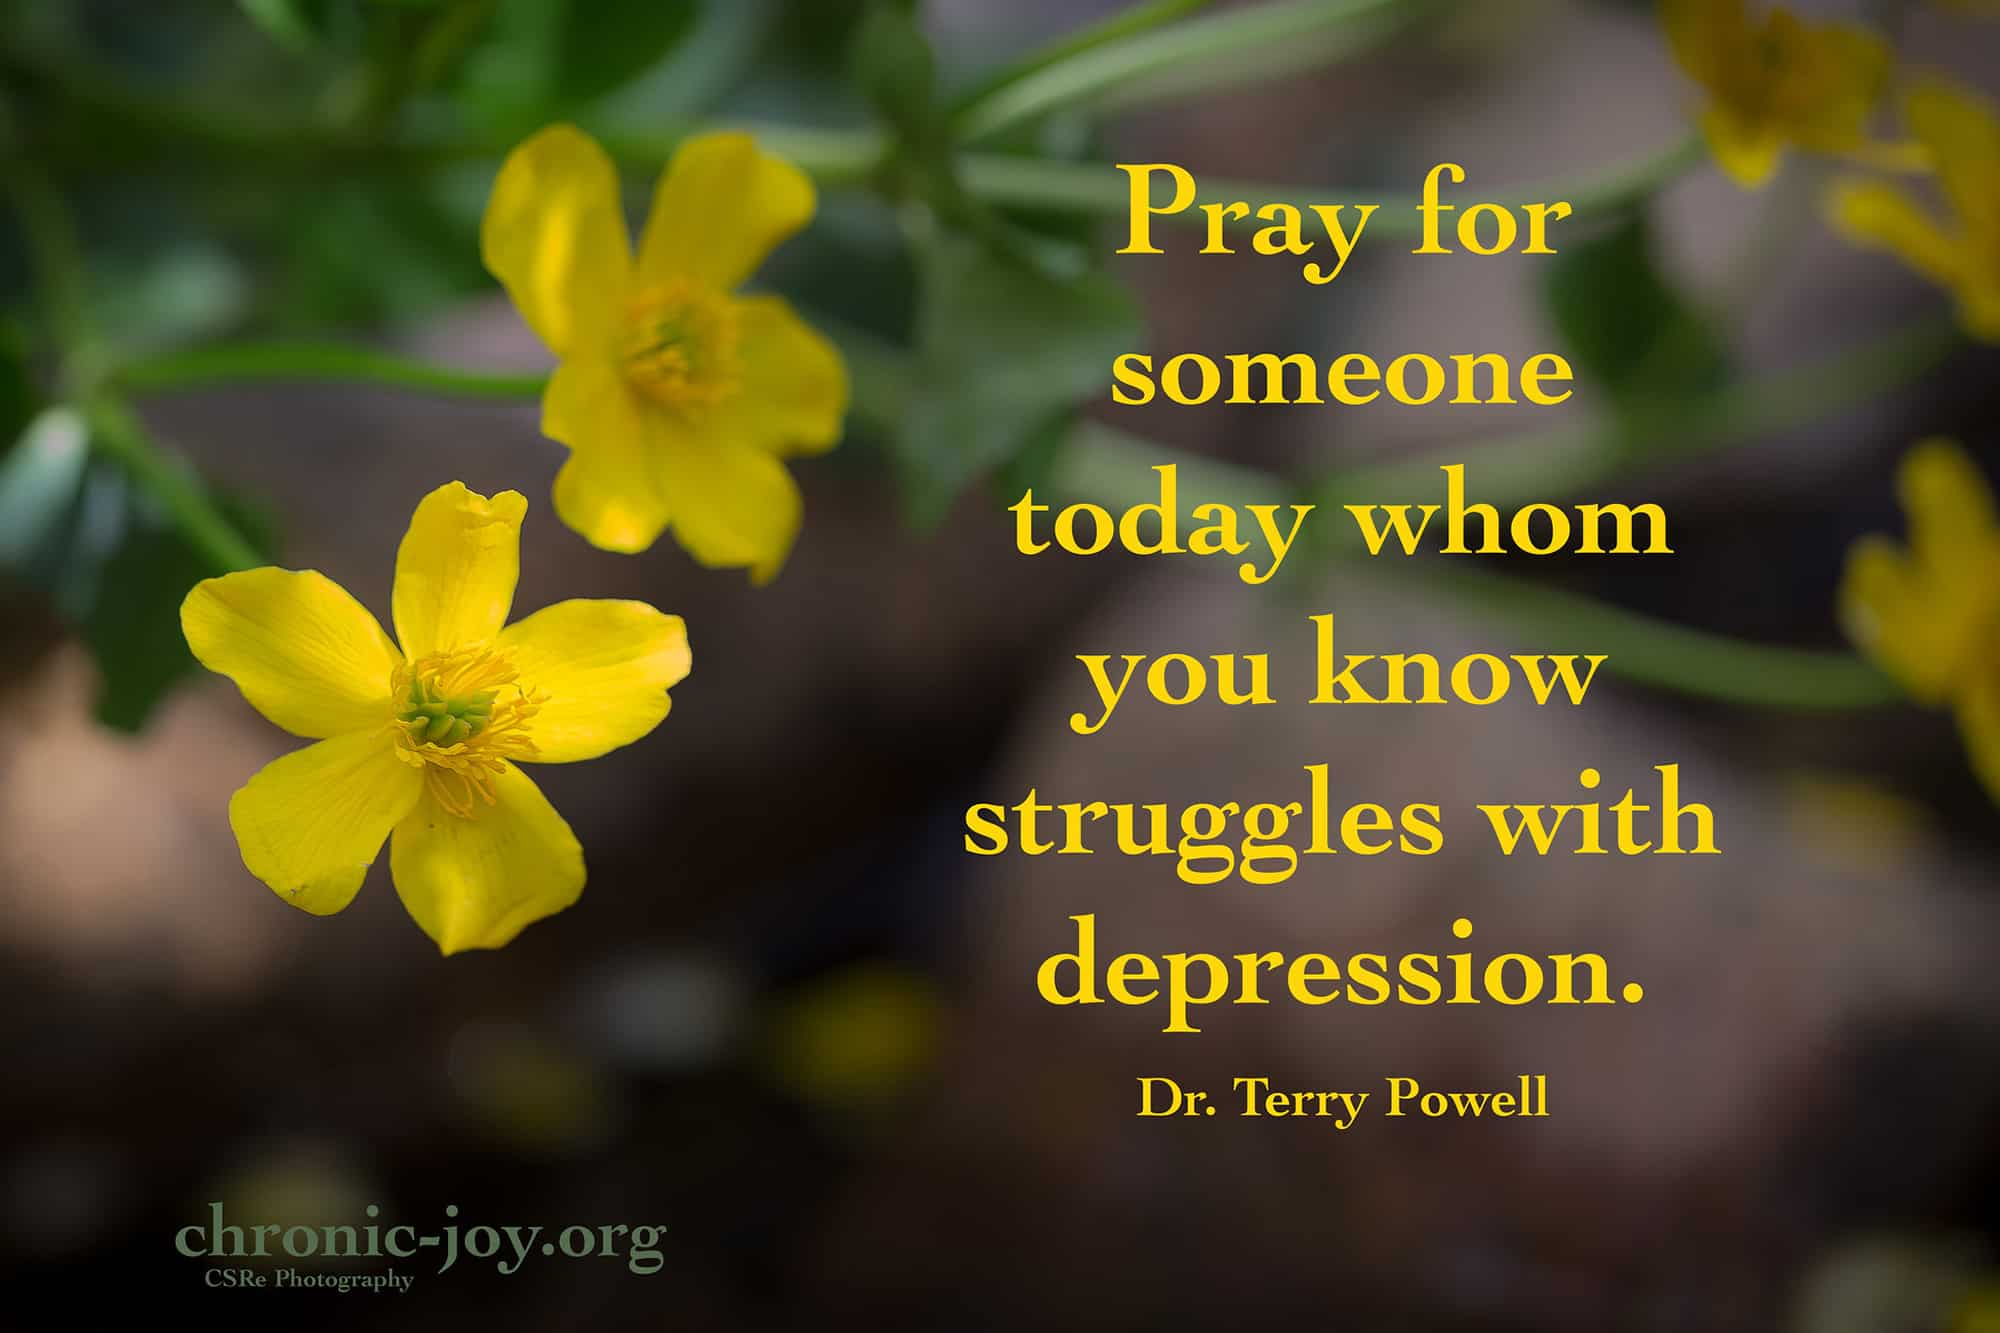 Pray for someone.